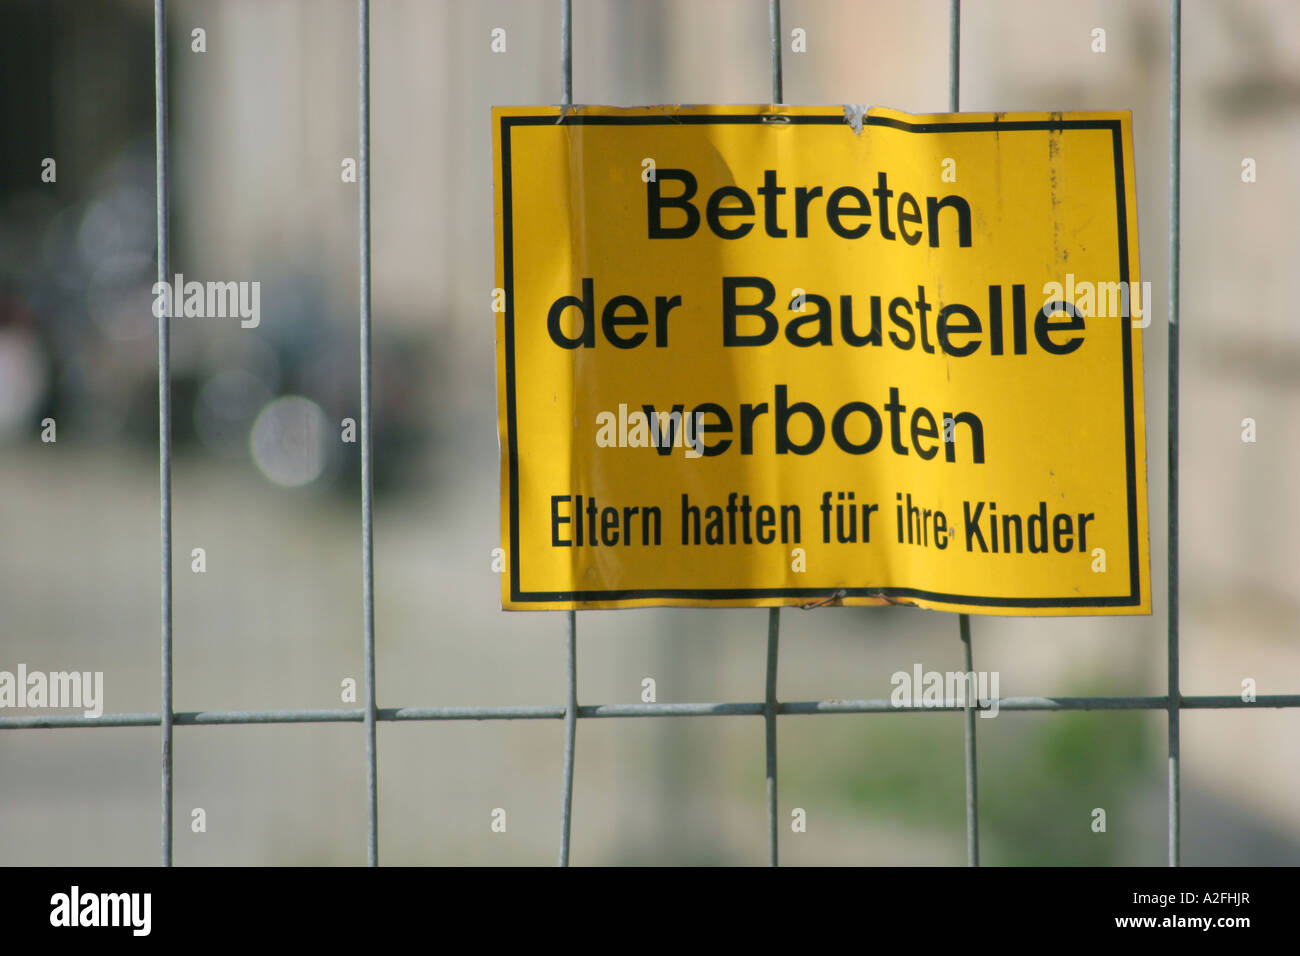 Warning label at a building site - parents are liable for their children Stock Photo